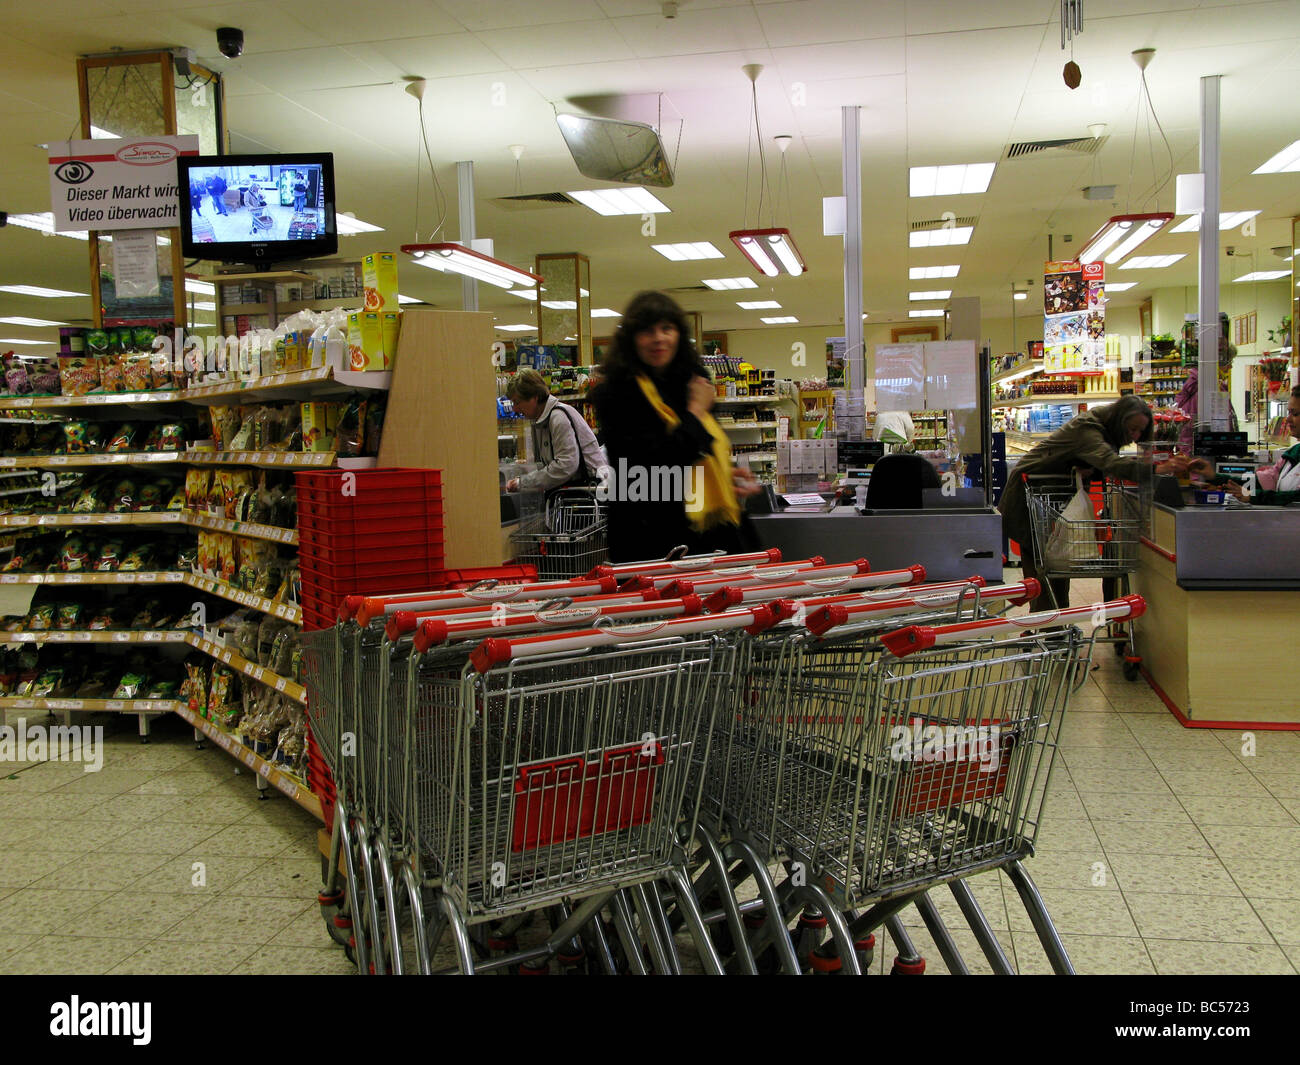 Woman Shoppers in a Germany Supermarket - Stock Image